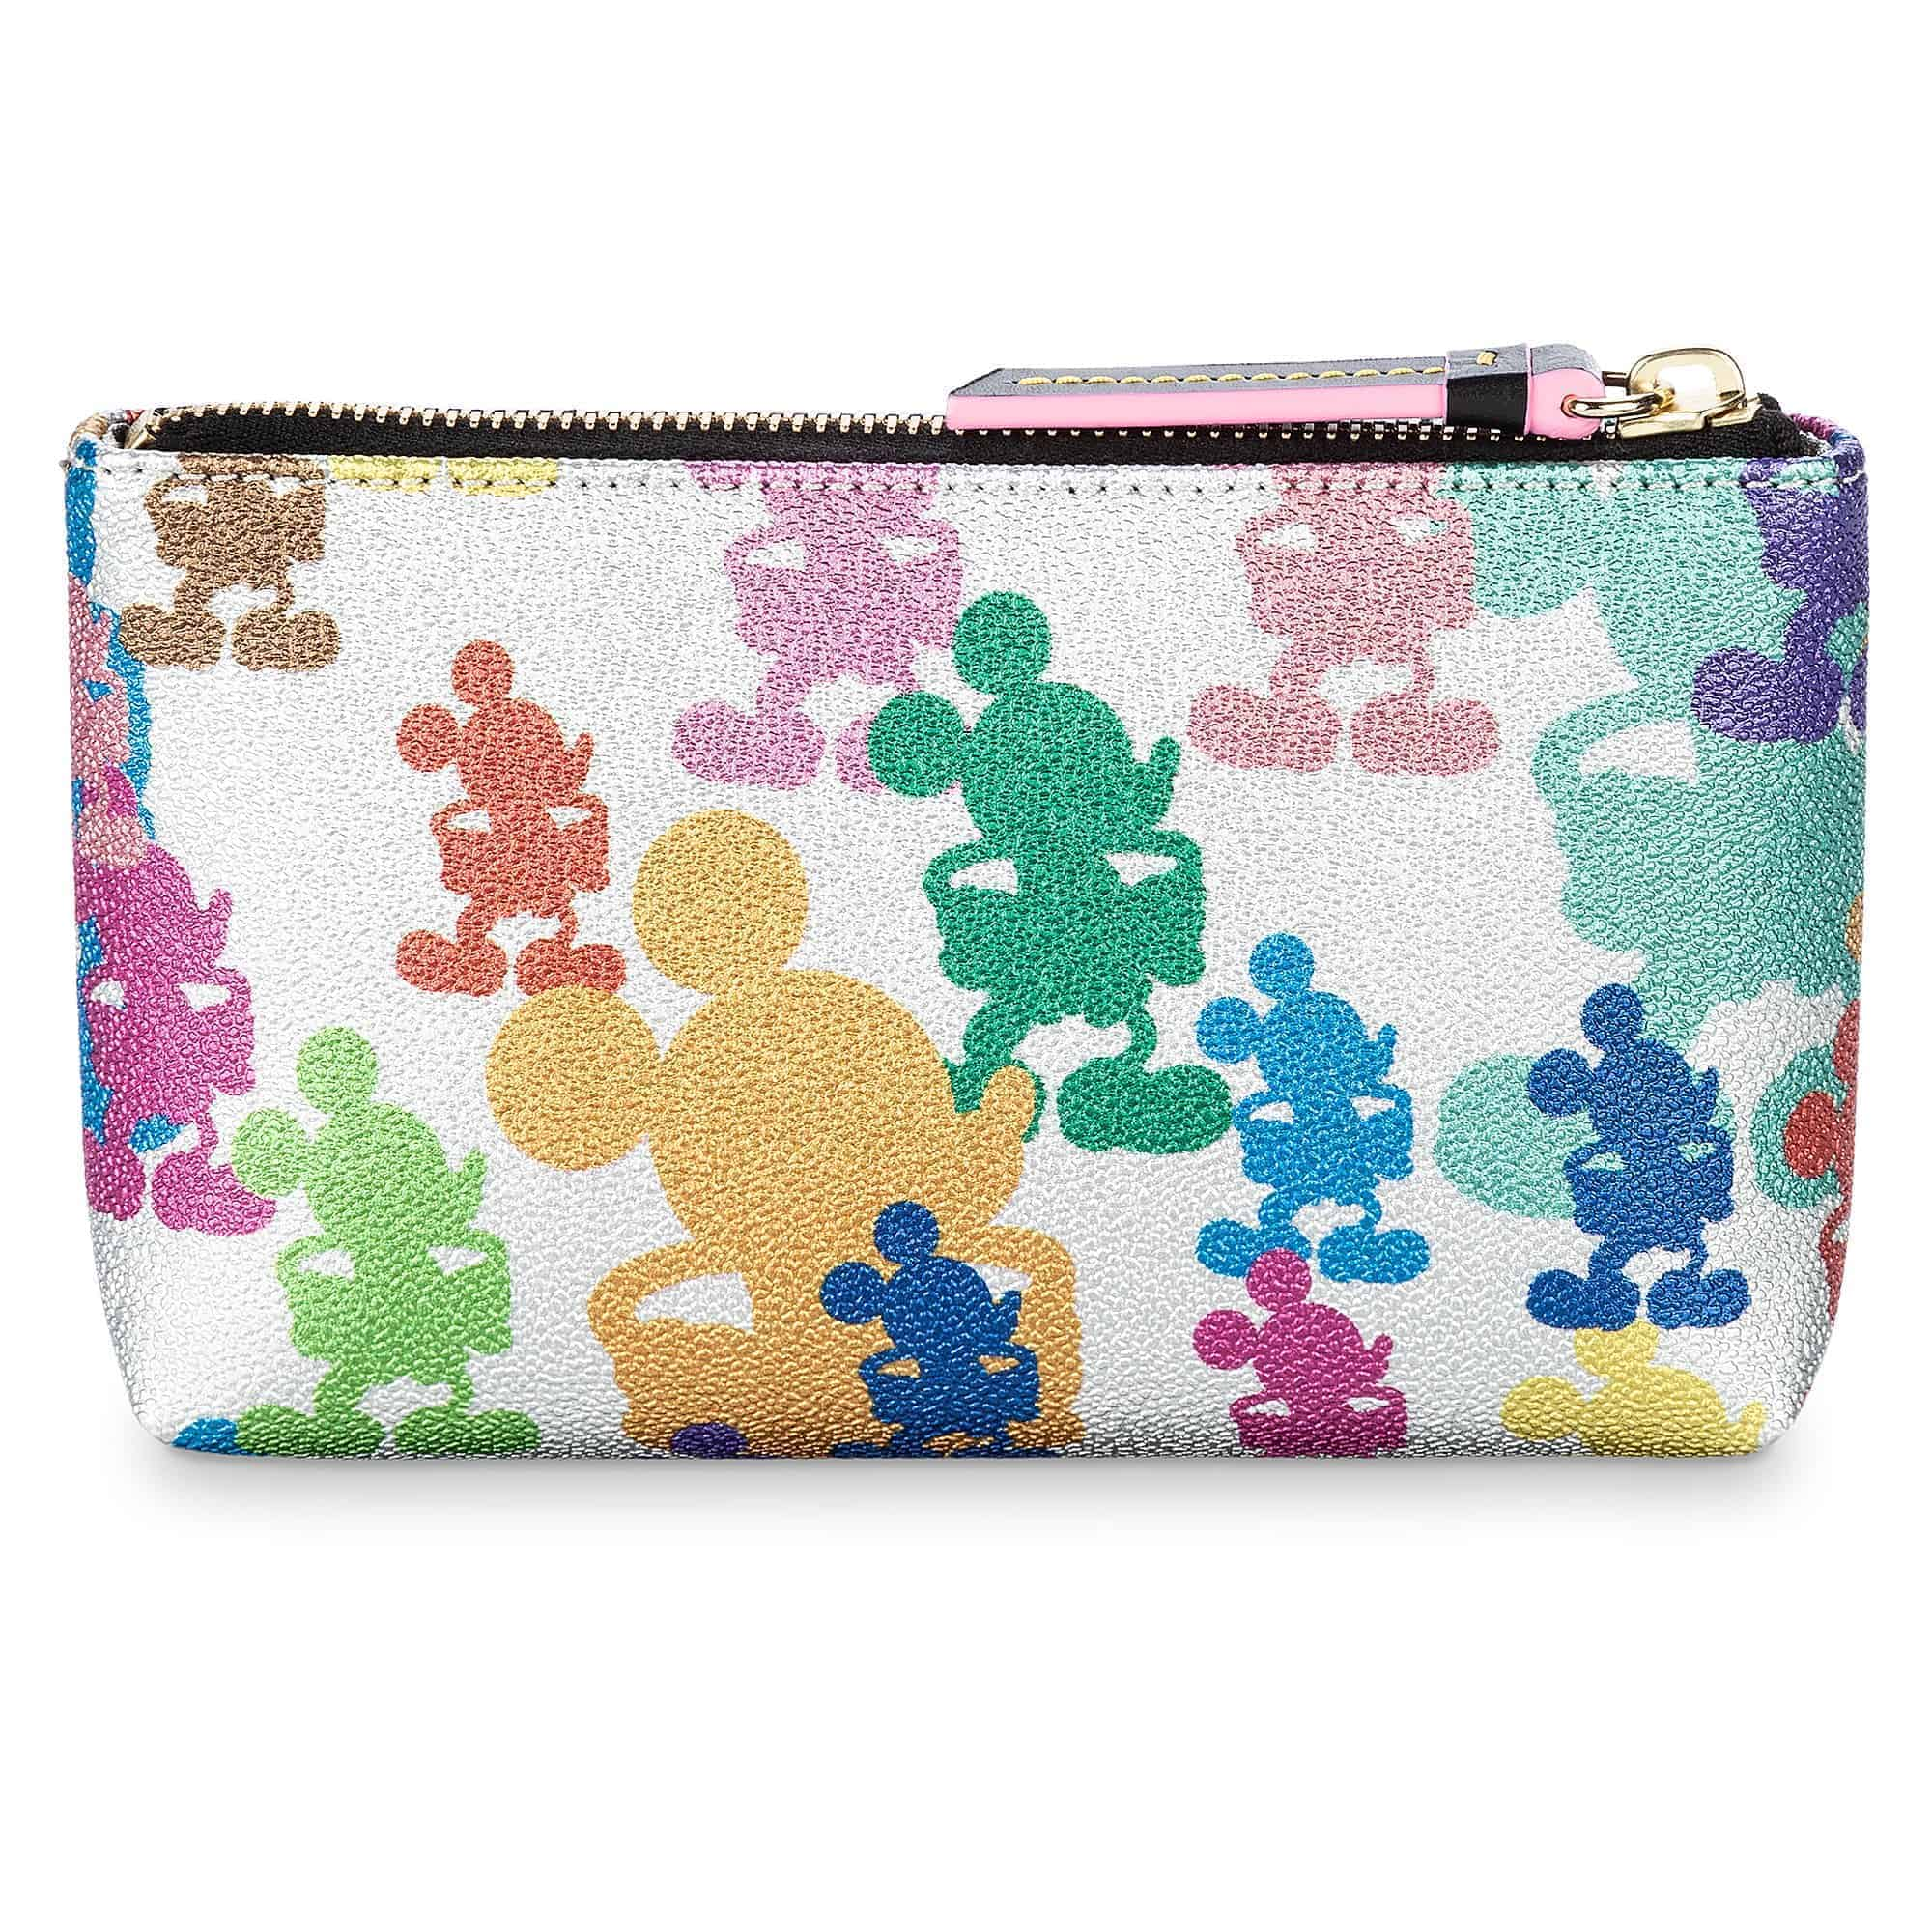 Mickey Mouse Silver Cosmetic Bag(bag) by Dooney & Bourke – 10th Anniversary